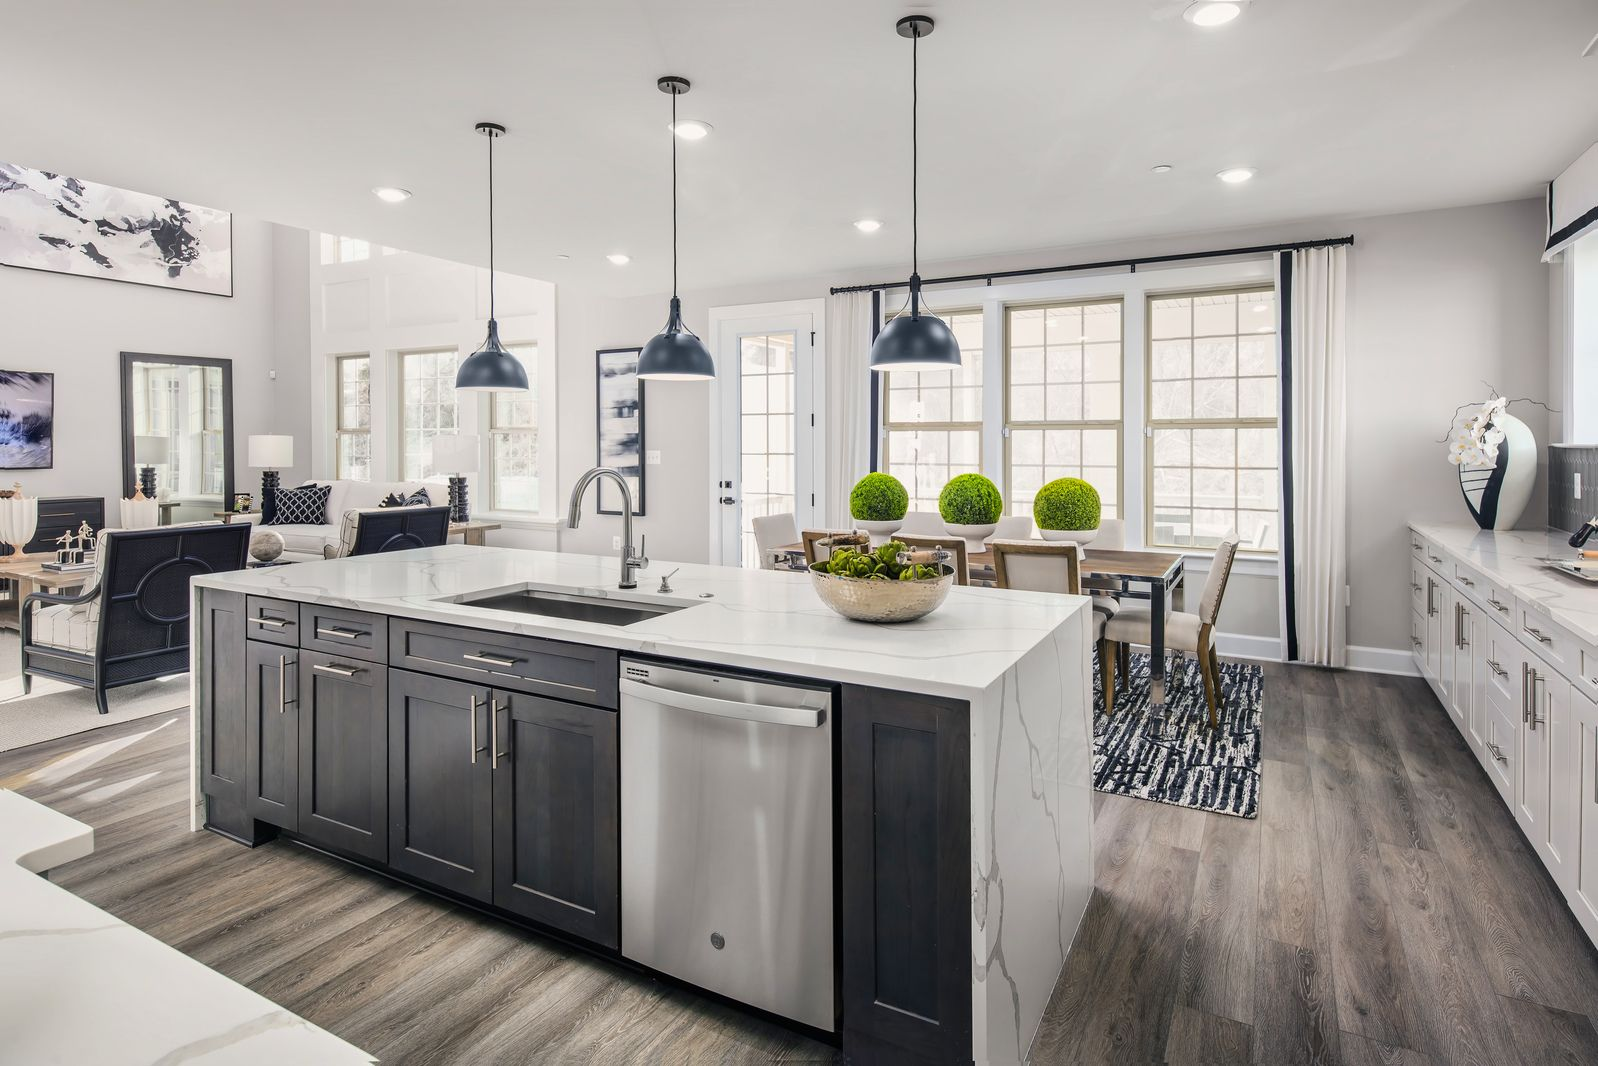 Kitchen featured in the Stratford Hall By NVHomes in Sussex, DE